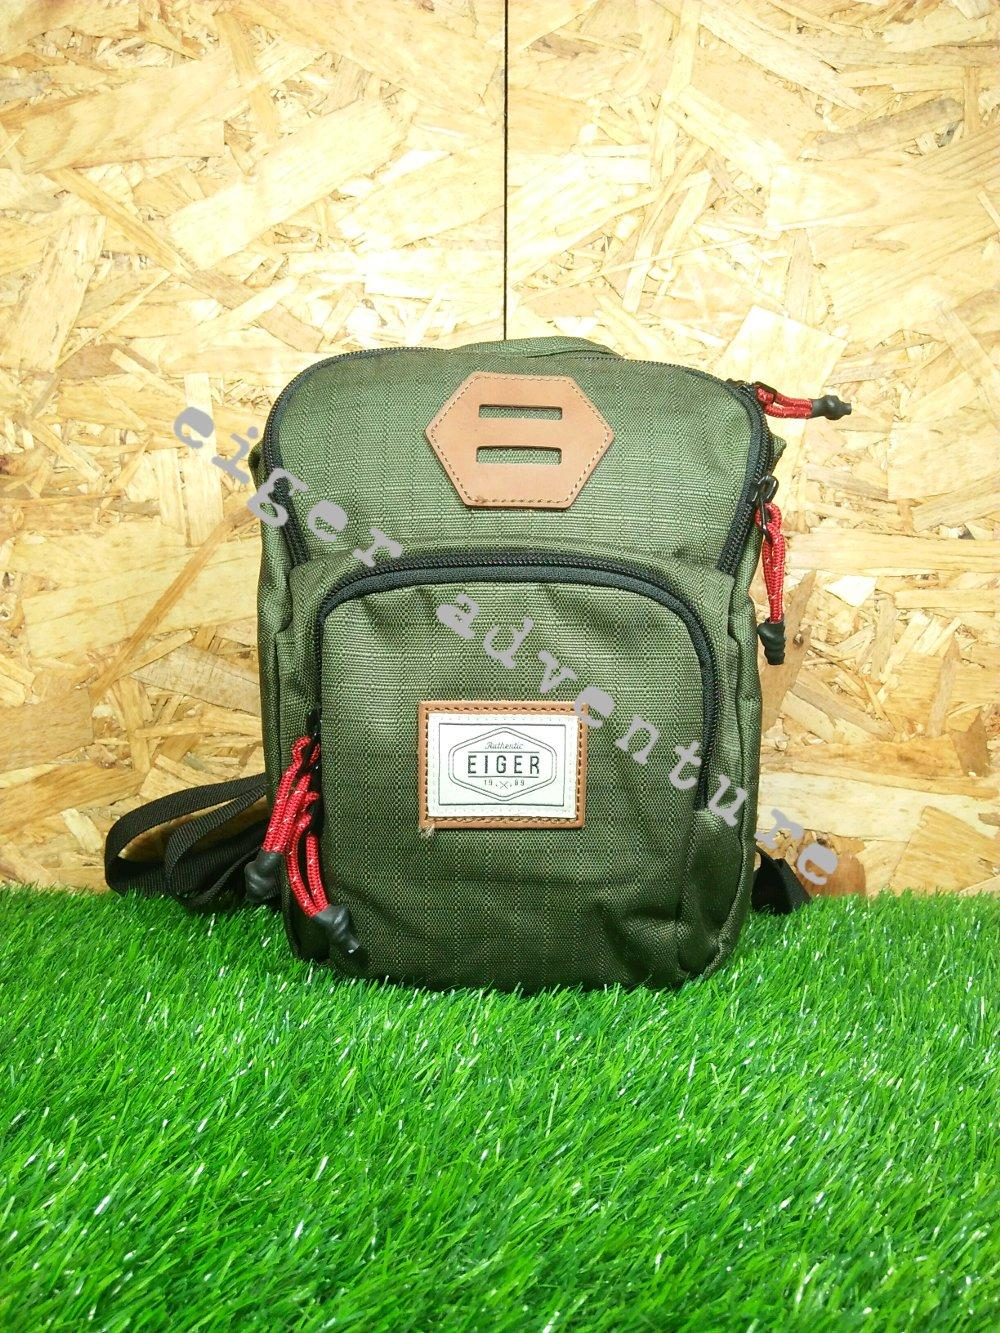 Buy Sell Cheapest Eiger Ls Legpack Best Quality Product Deals 1989 Migrate S 2l Brown Tas Paha Pria The Leggeer 7380